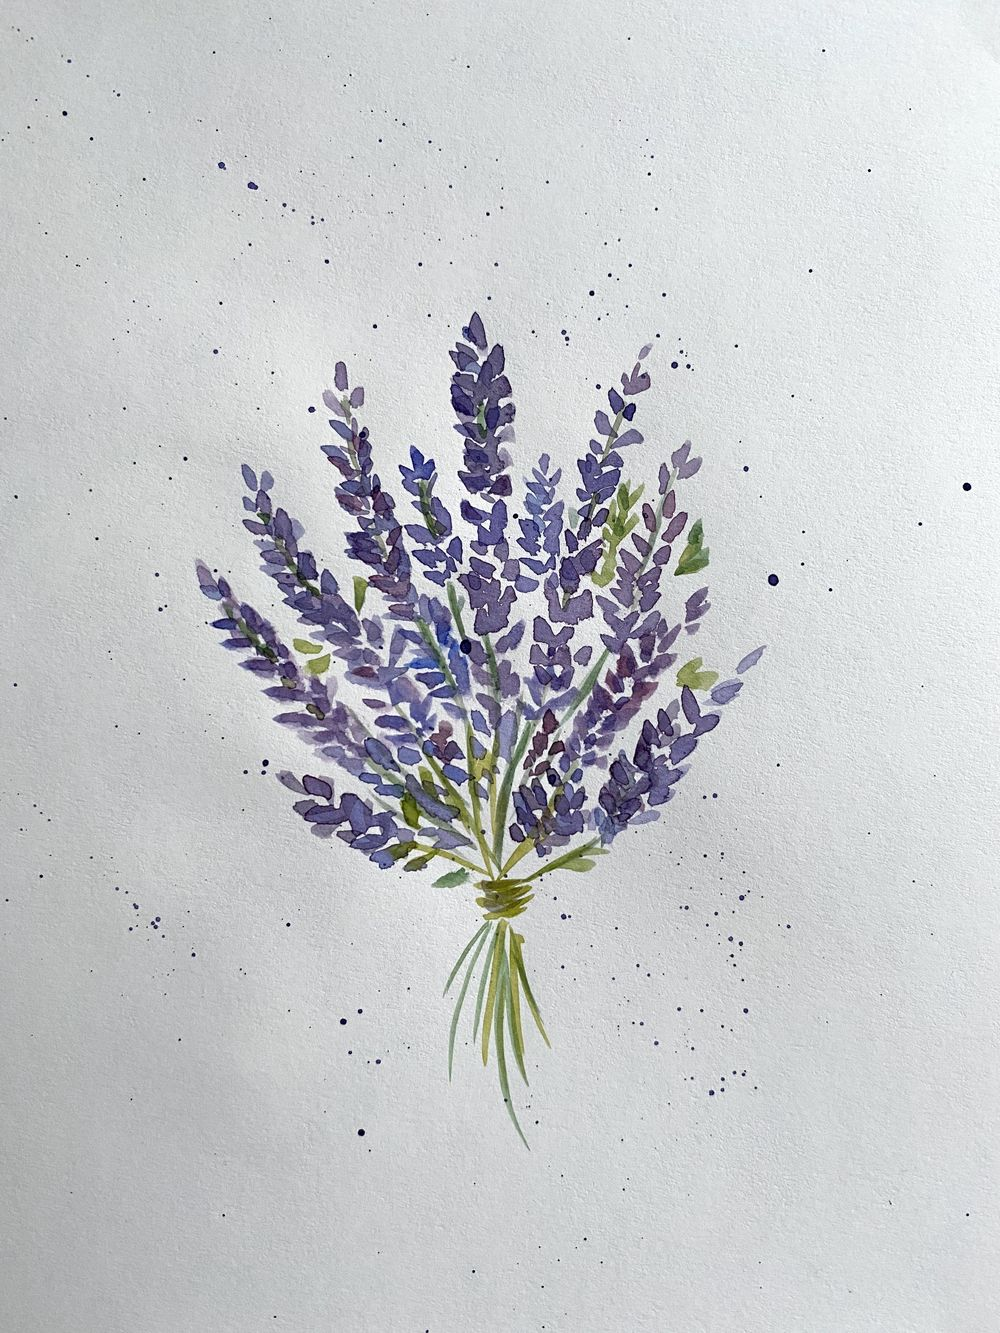 lavender and blue flowers - image 1 - student project